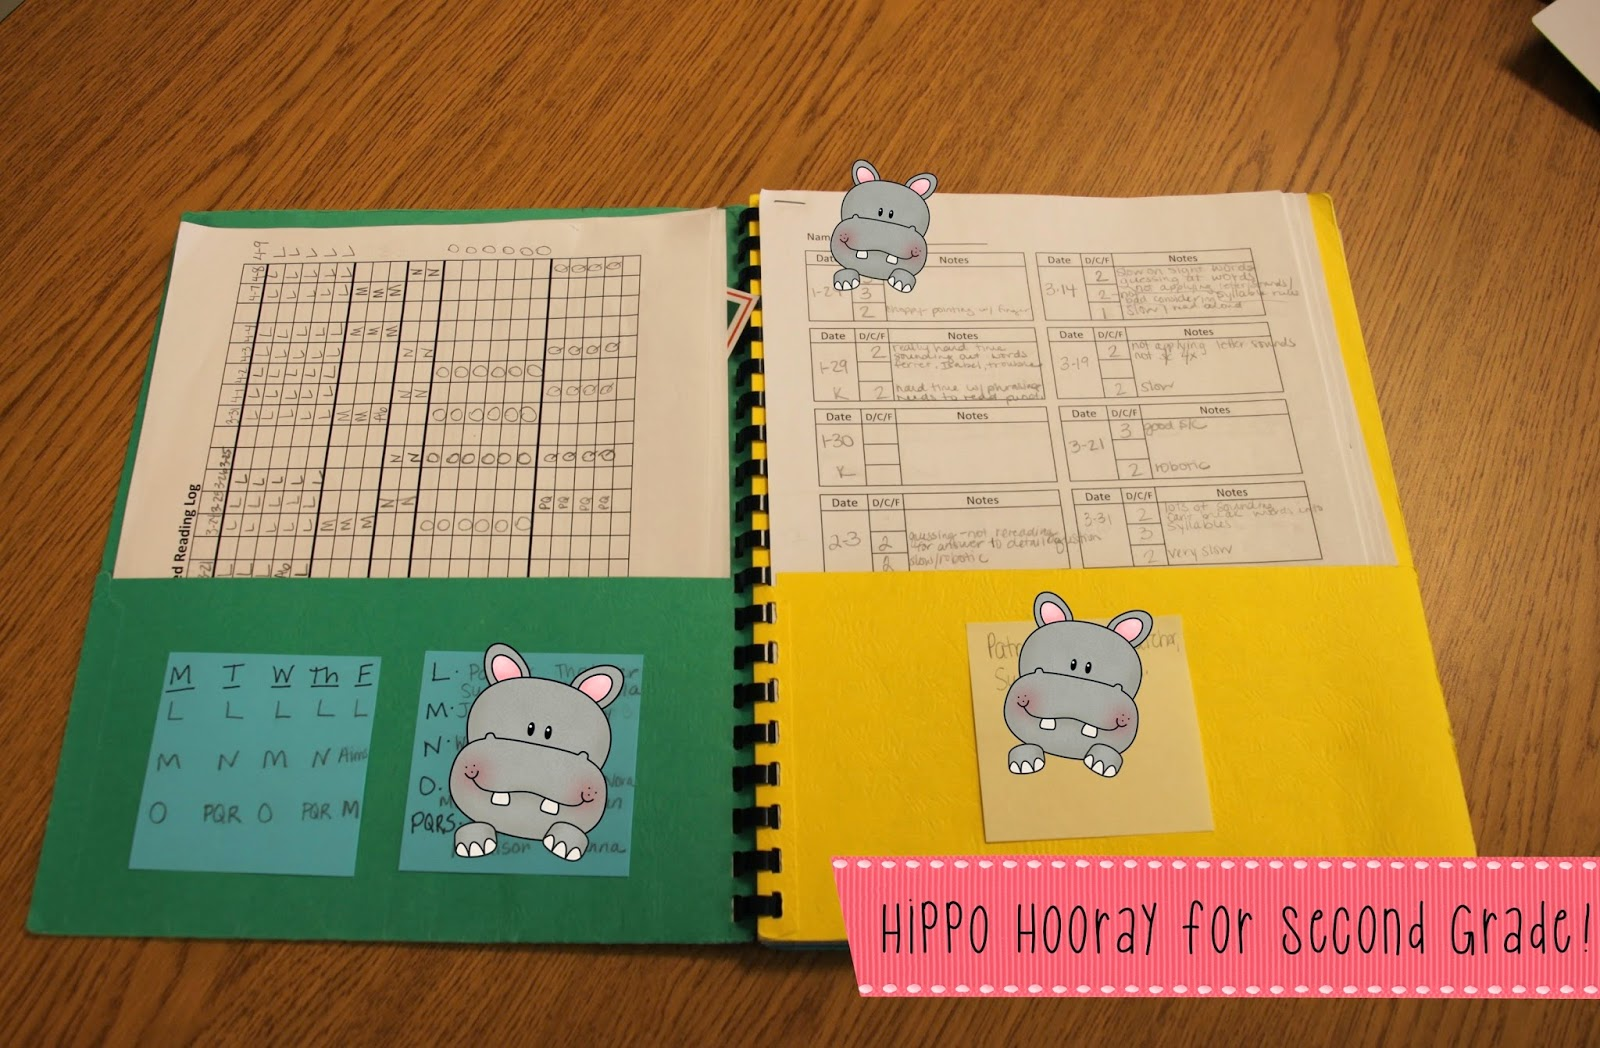 Guided Reading Lesson Planning And Note Taking Hippo Hooray For